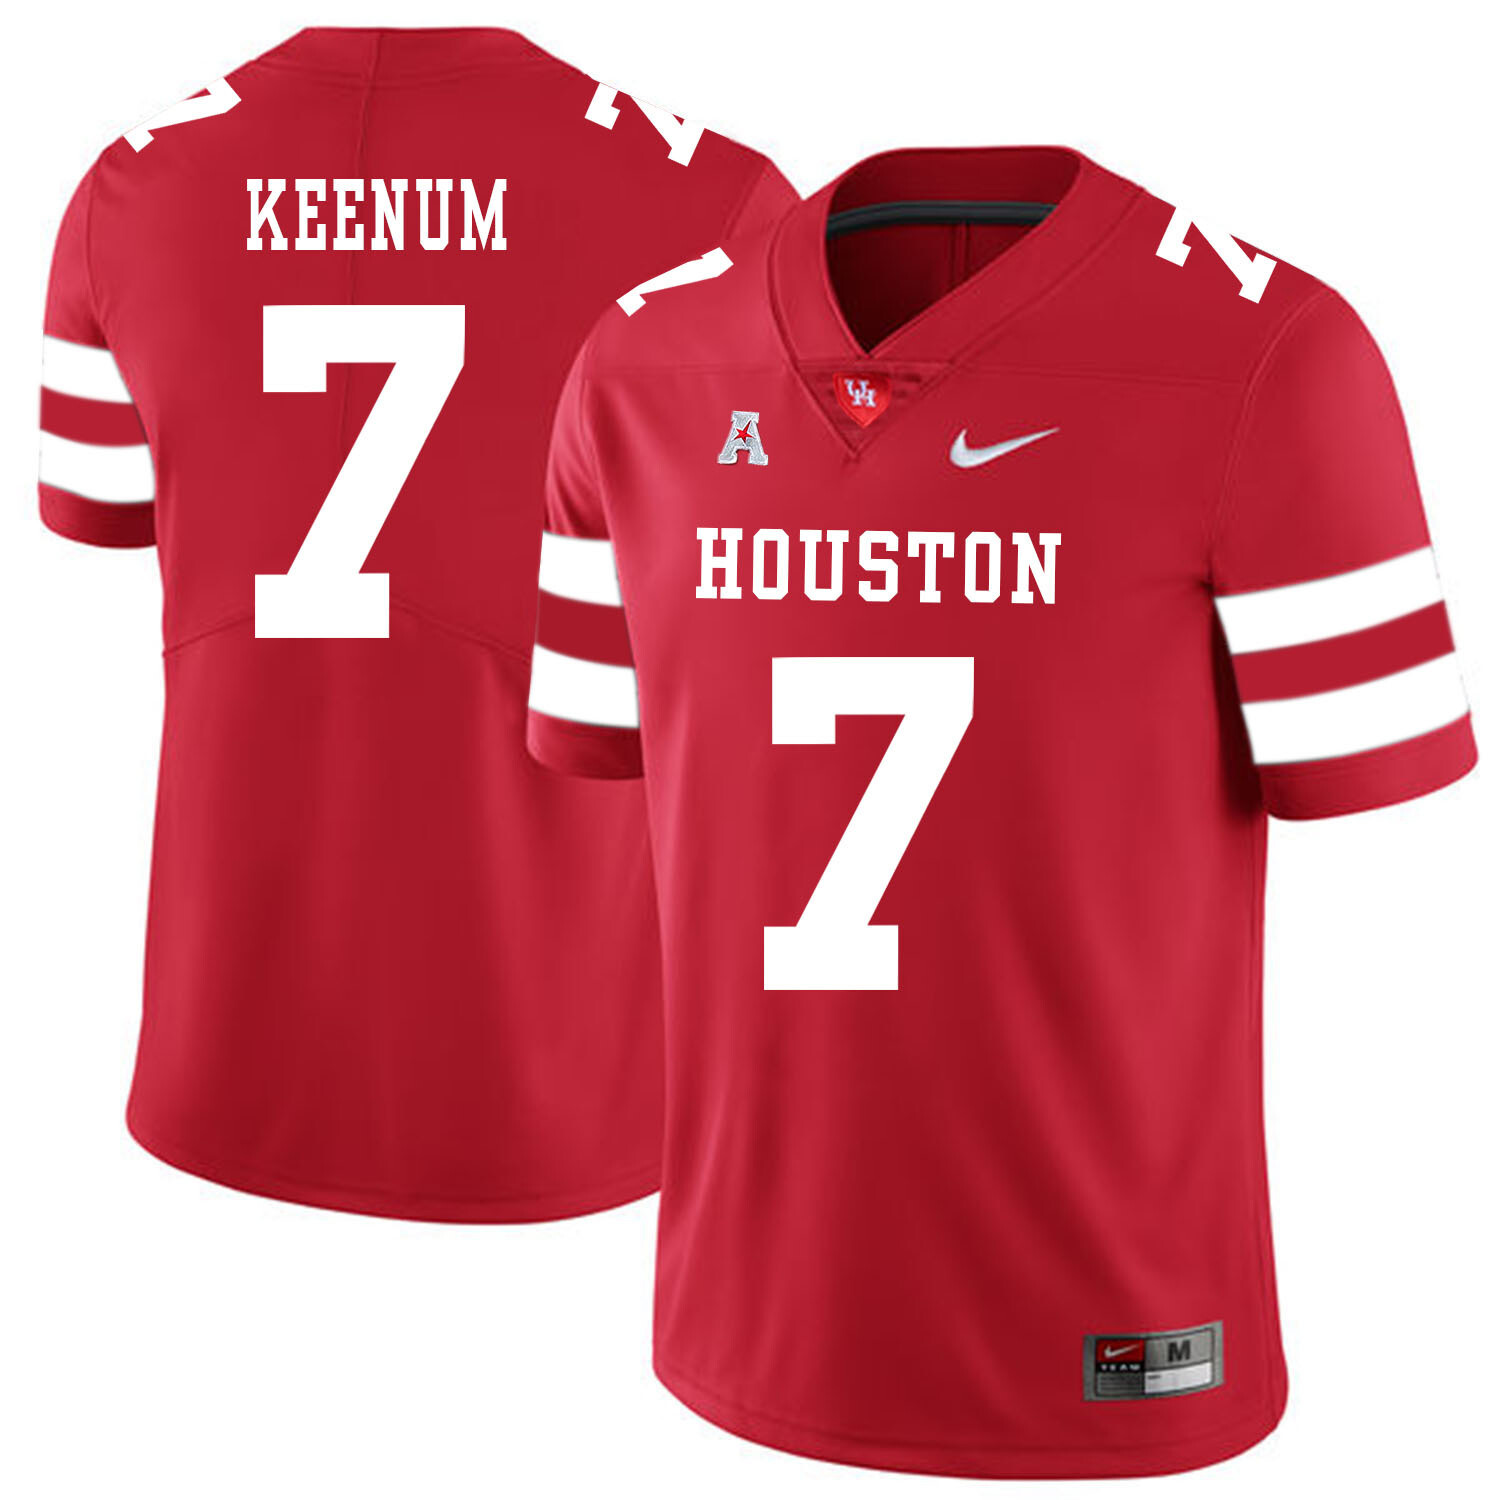 Houston Cougars #7 Case Keenum College Football Jersey Red